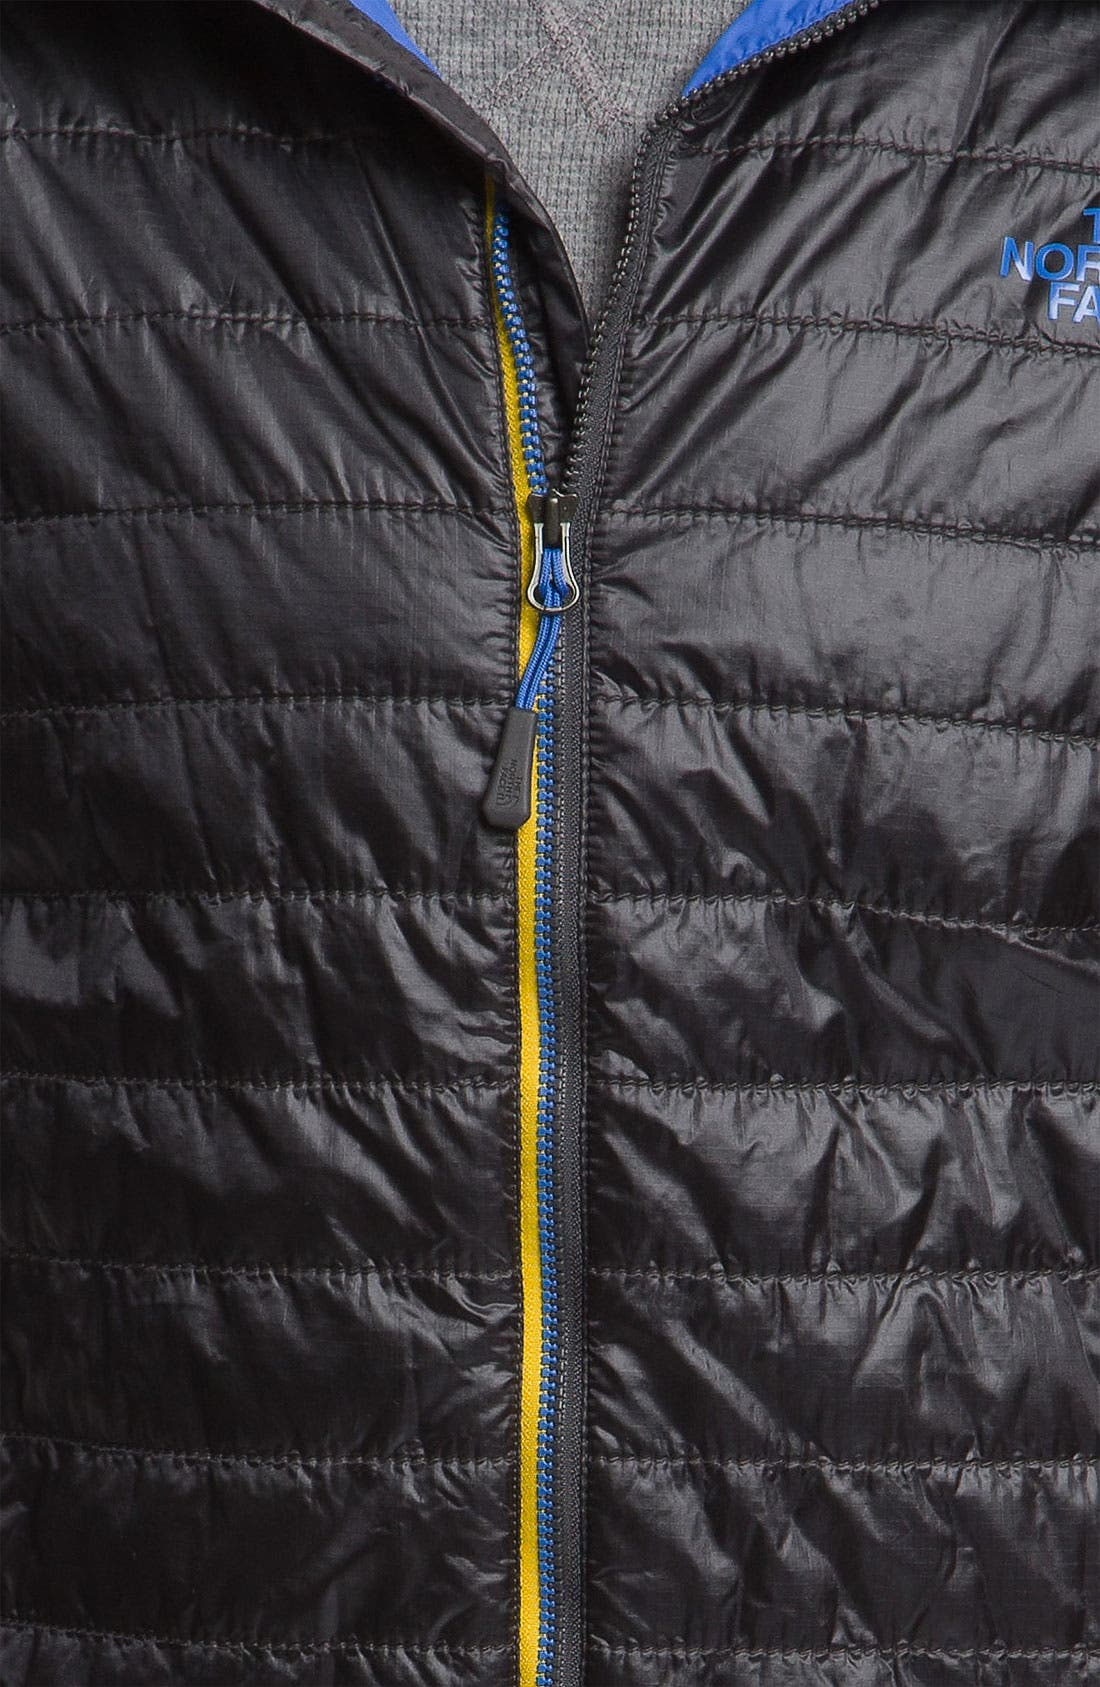 THE NORTH FACE,                             'Blaze' Jacket,                             Alternate thumbnail 3, color,                             020